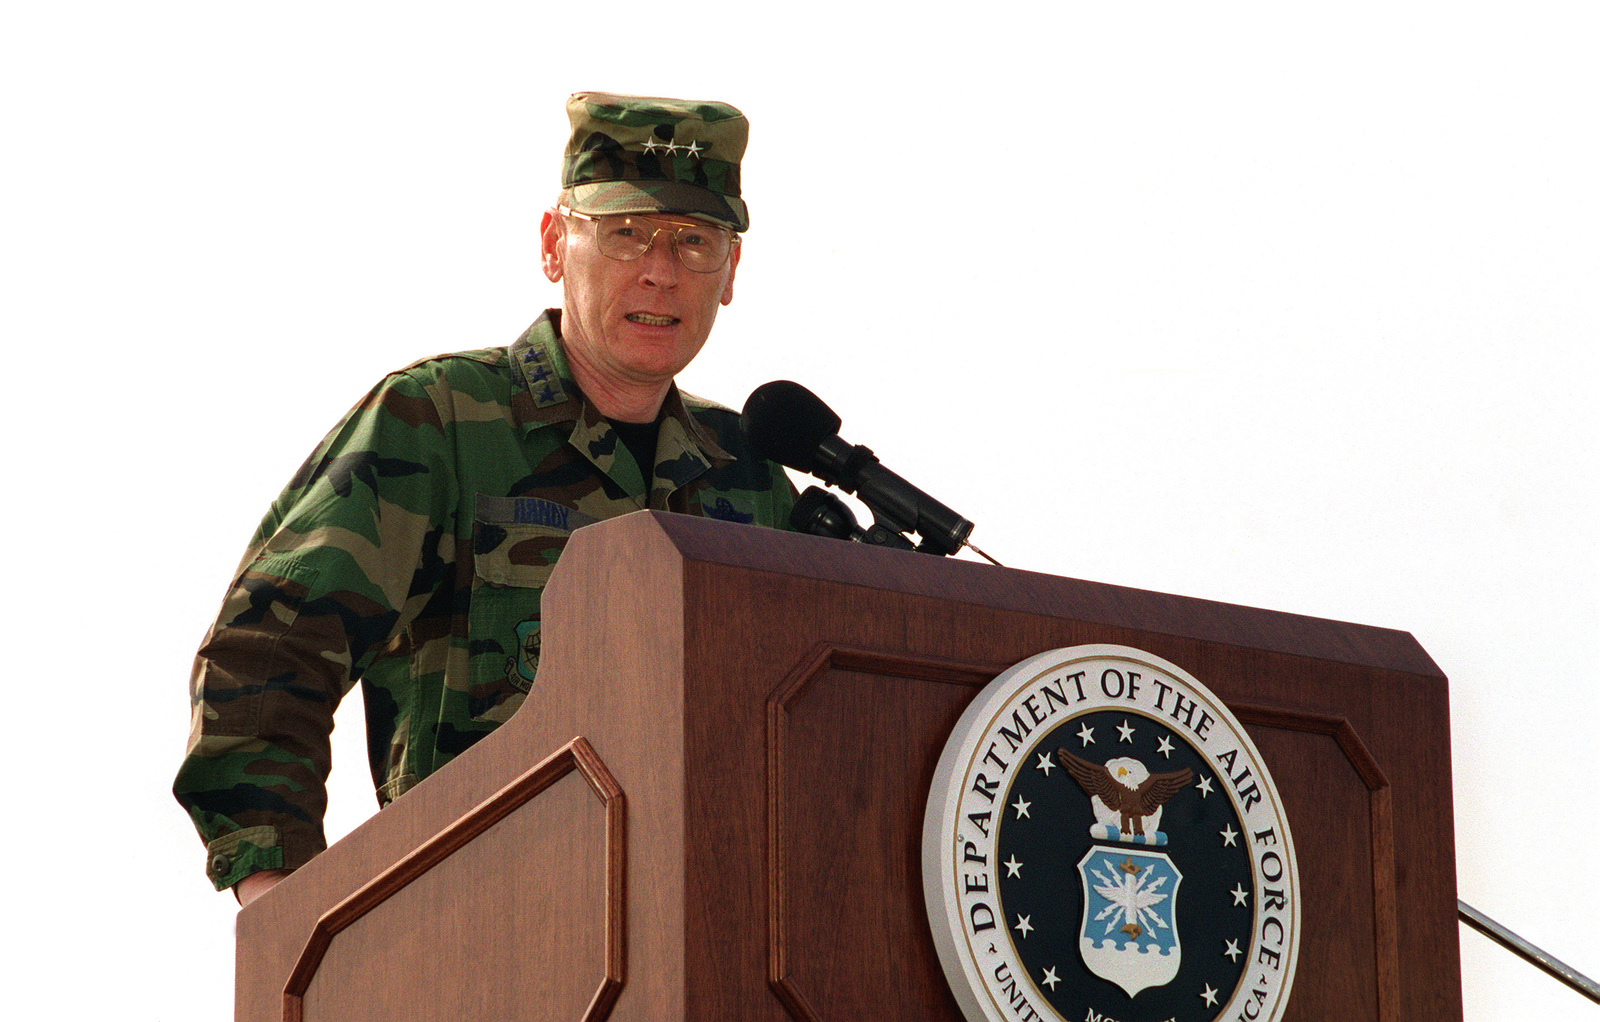 LGEN John W. Handy, Commander 21st Air Force, McGuire Air Force Base, New Jersey, speaks from a podium during the ceremonies marking the arrival of the new 60K Tunner Loader. The new loader will support a 60,000 pound maximum load, carry 463L pallets, is 65 feet long, 14 feet wide and has a maximum height of 18 feet